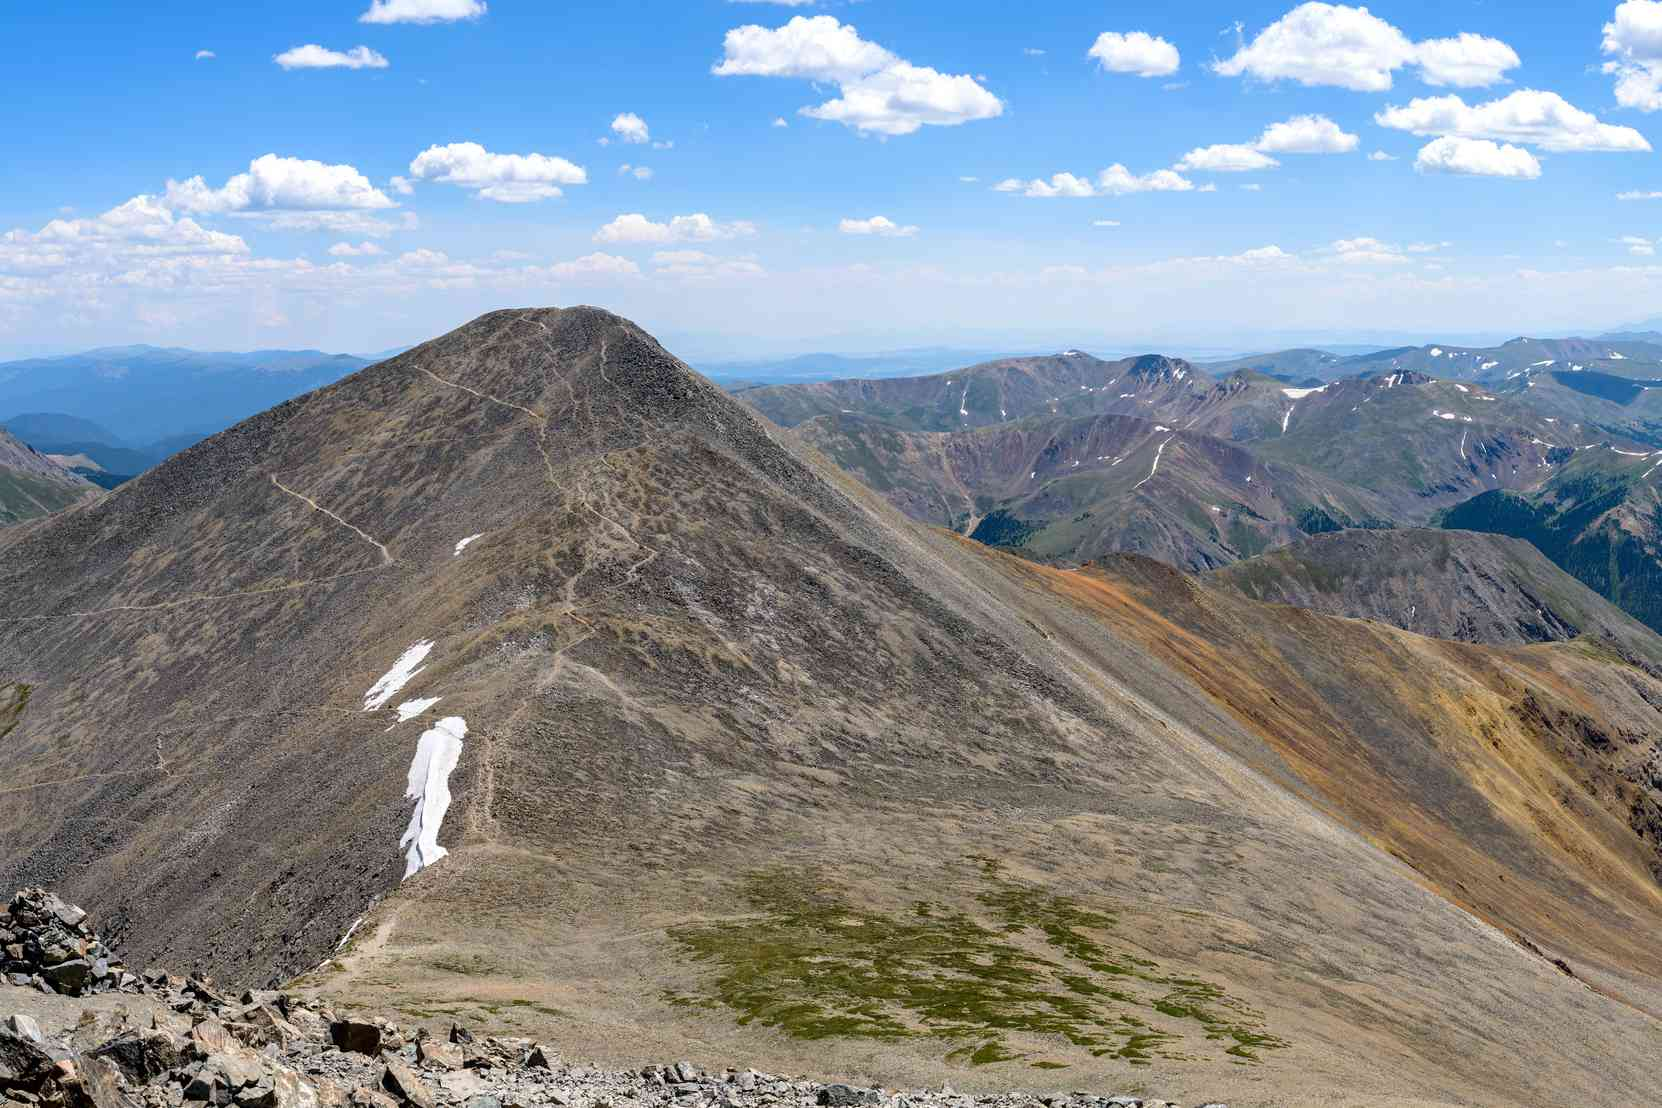 View of Grays Peak, highest point of the CDT